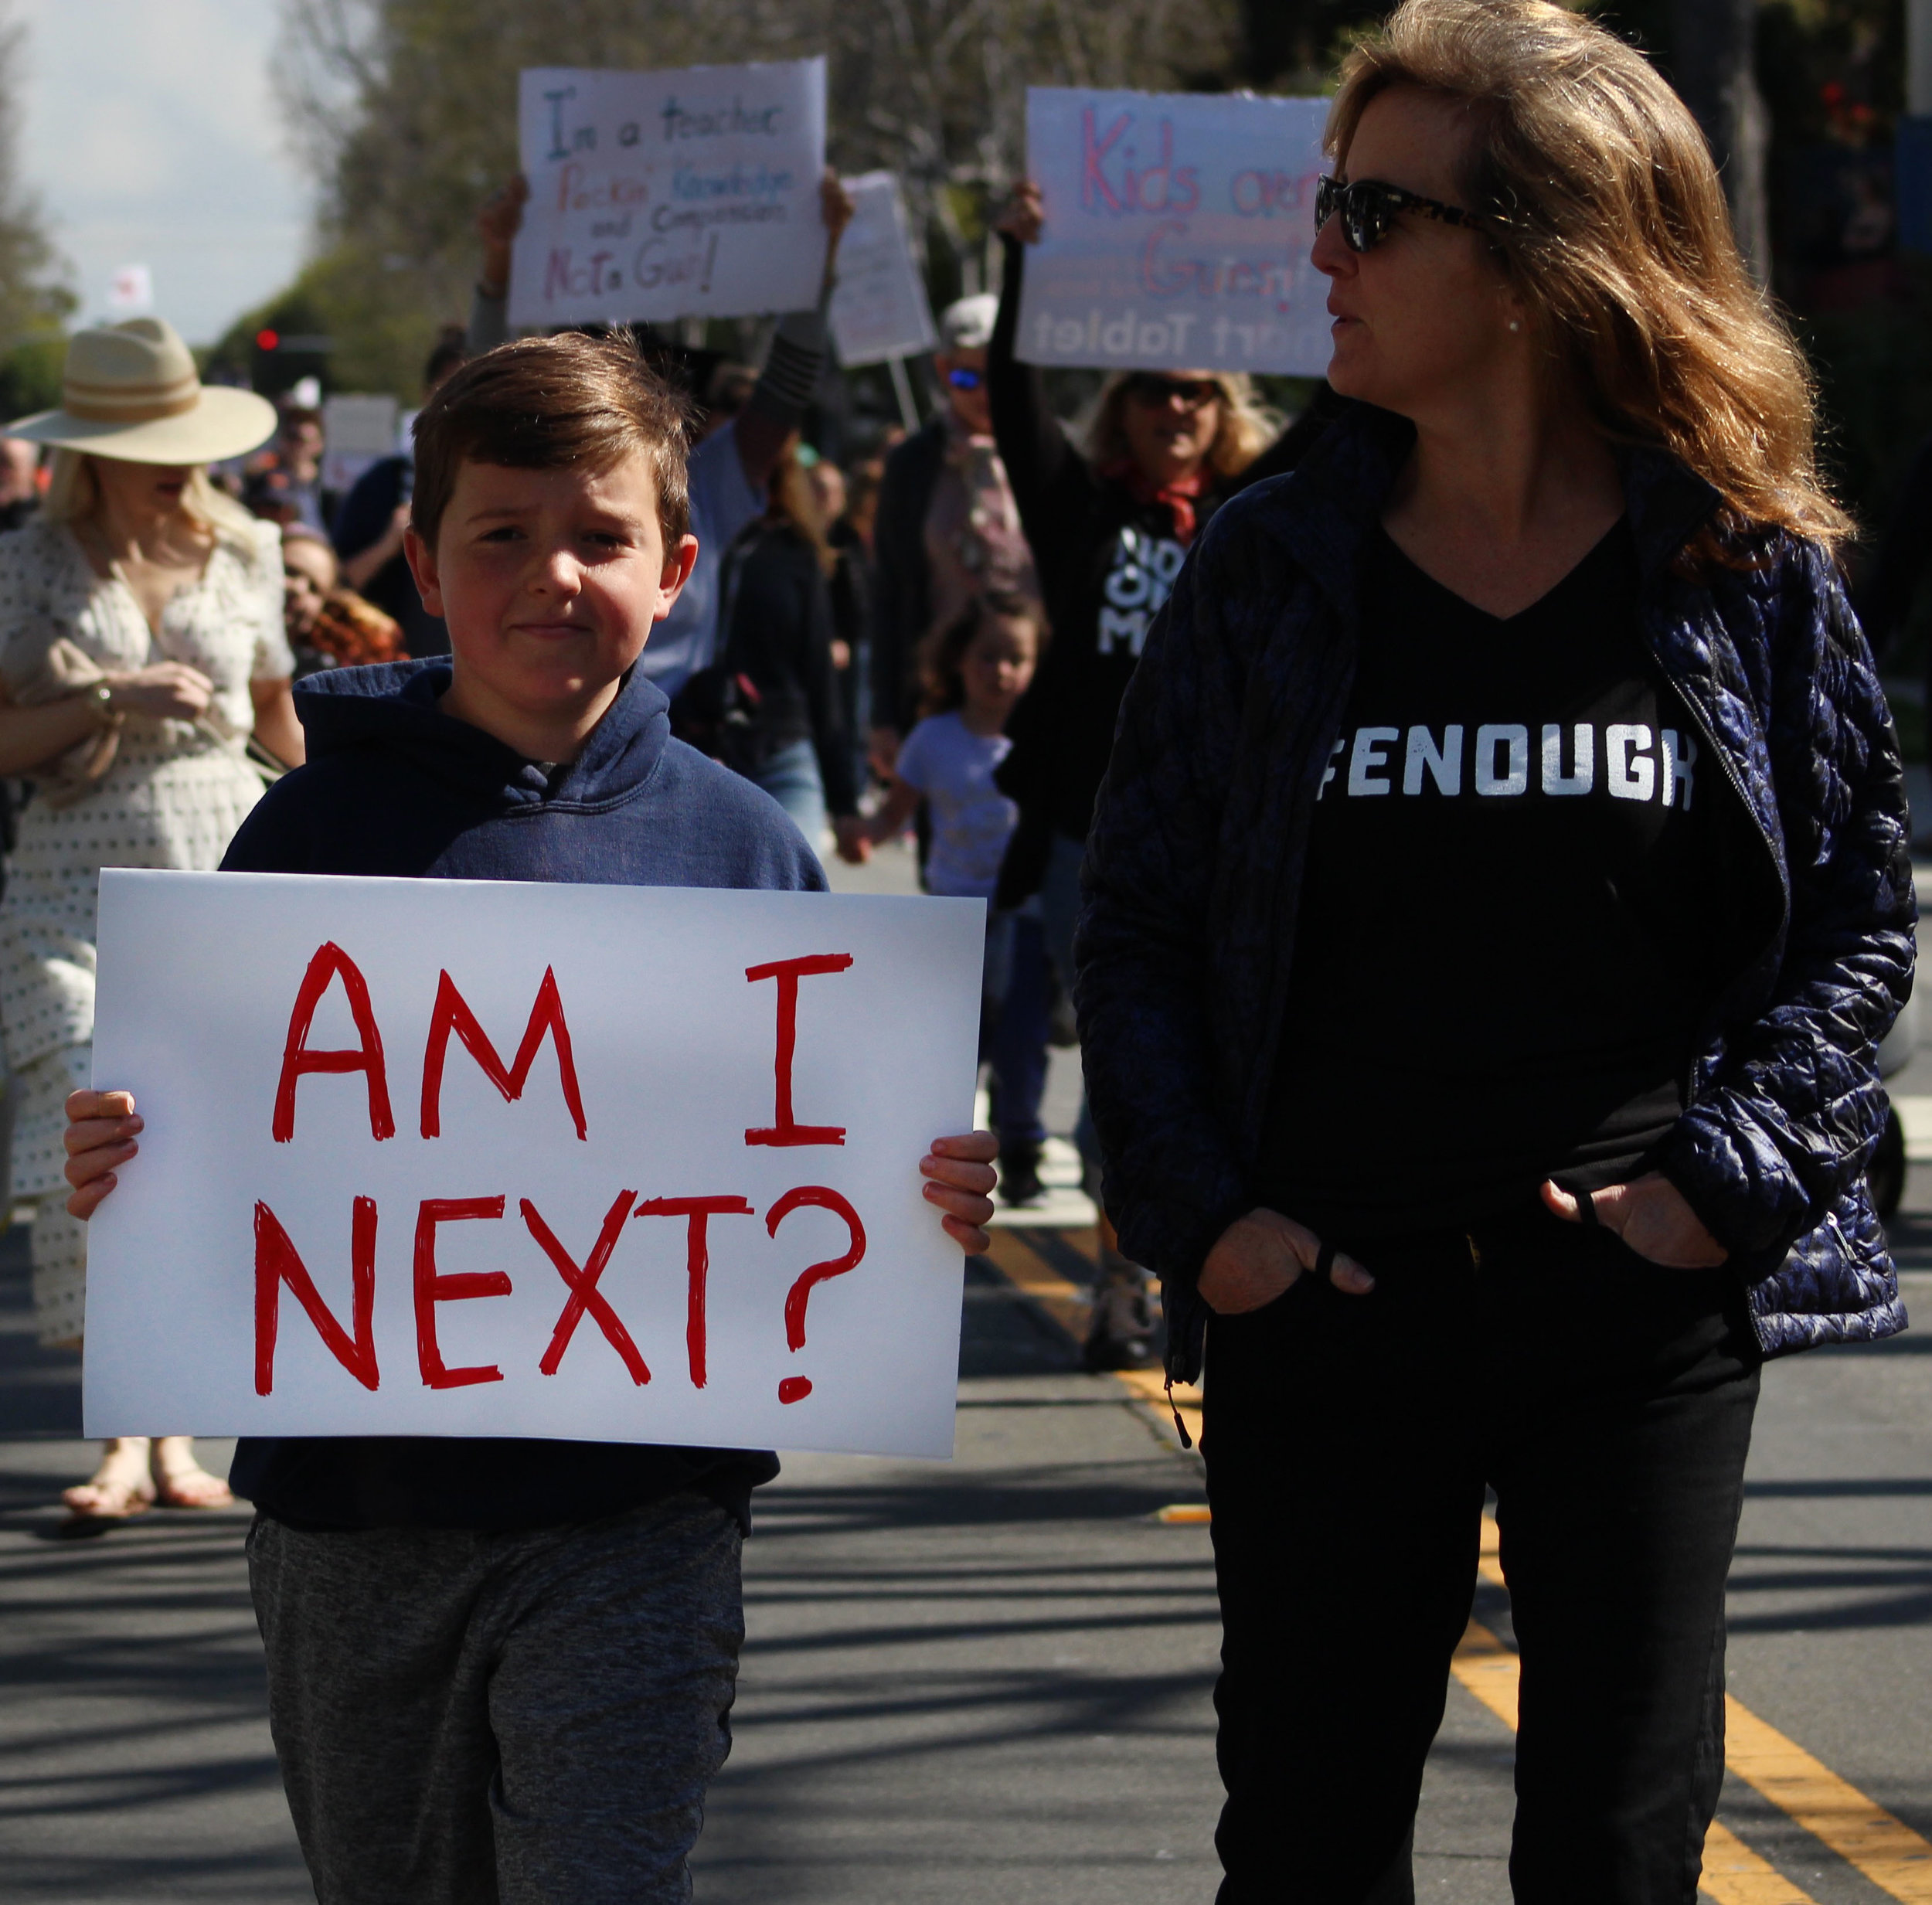 Jack Schneider and his mom, Laura Scheider, walk within the crowd holding homemade signs and chanting along with the protest on Montana Avenue in Santa Monica, California. On Saturday, March 24, 2018. (Pyper Witt/Corsair Photo)